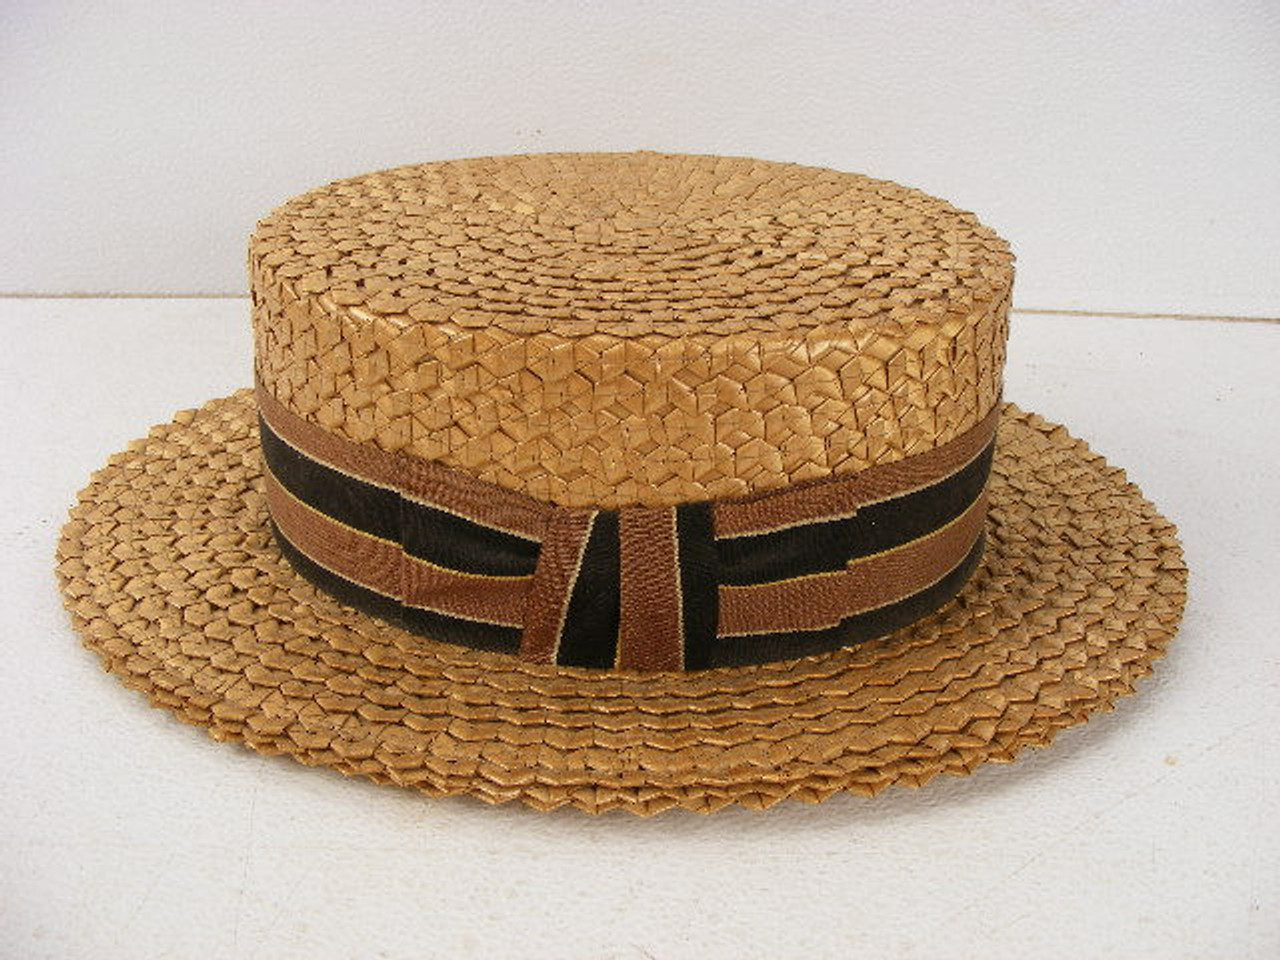 b564783affb8c This antique straw boater hat from Mode De Paris dates to the 1920s and is  a size 7 1 4. - Antique Mystique